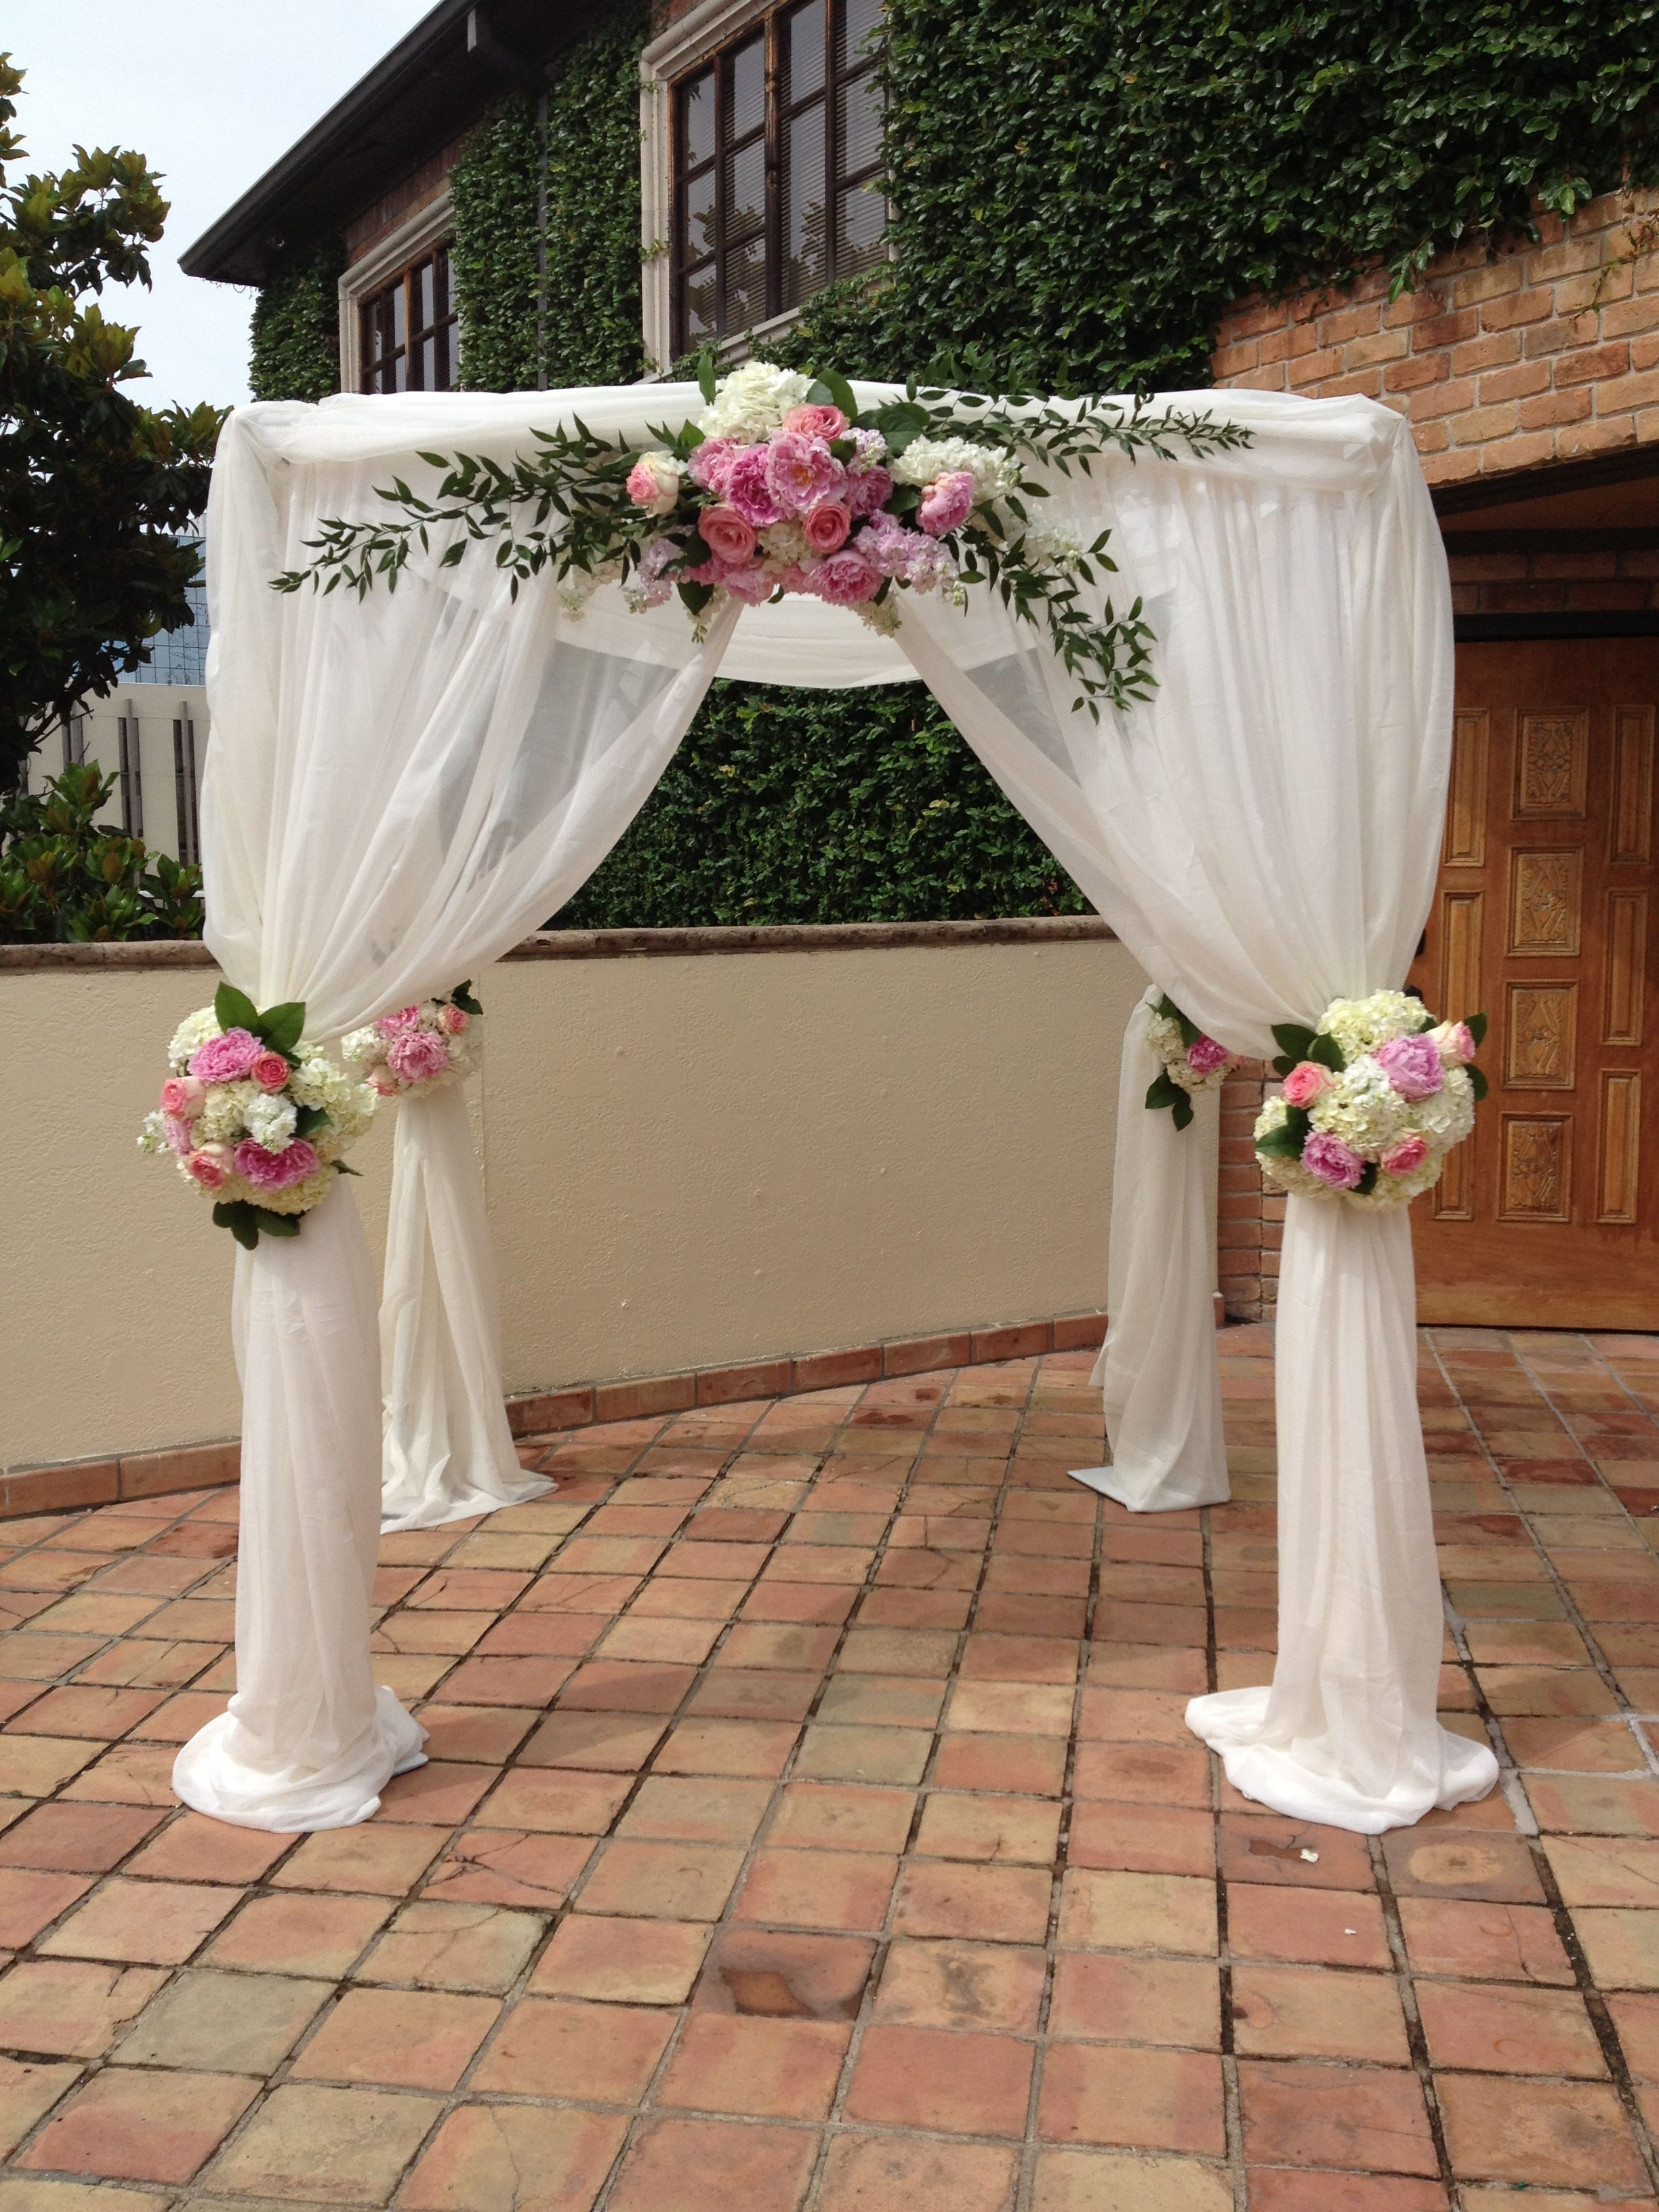 Wedding Gazebo - over sweetheart table at reception ...